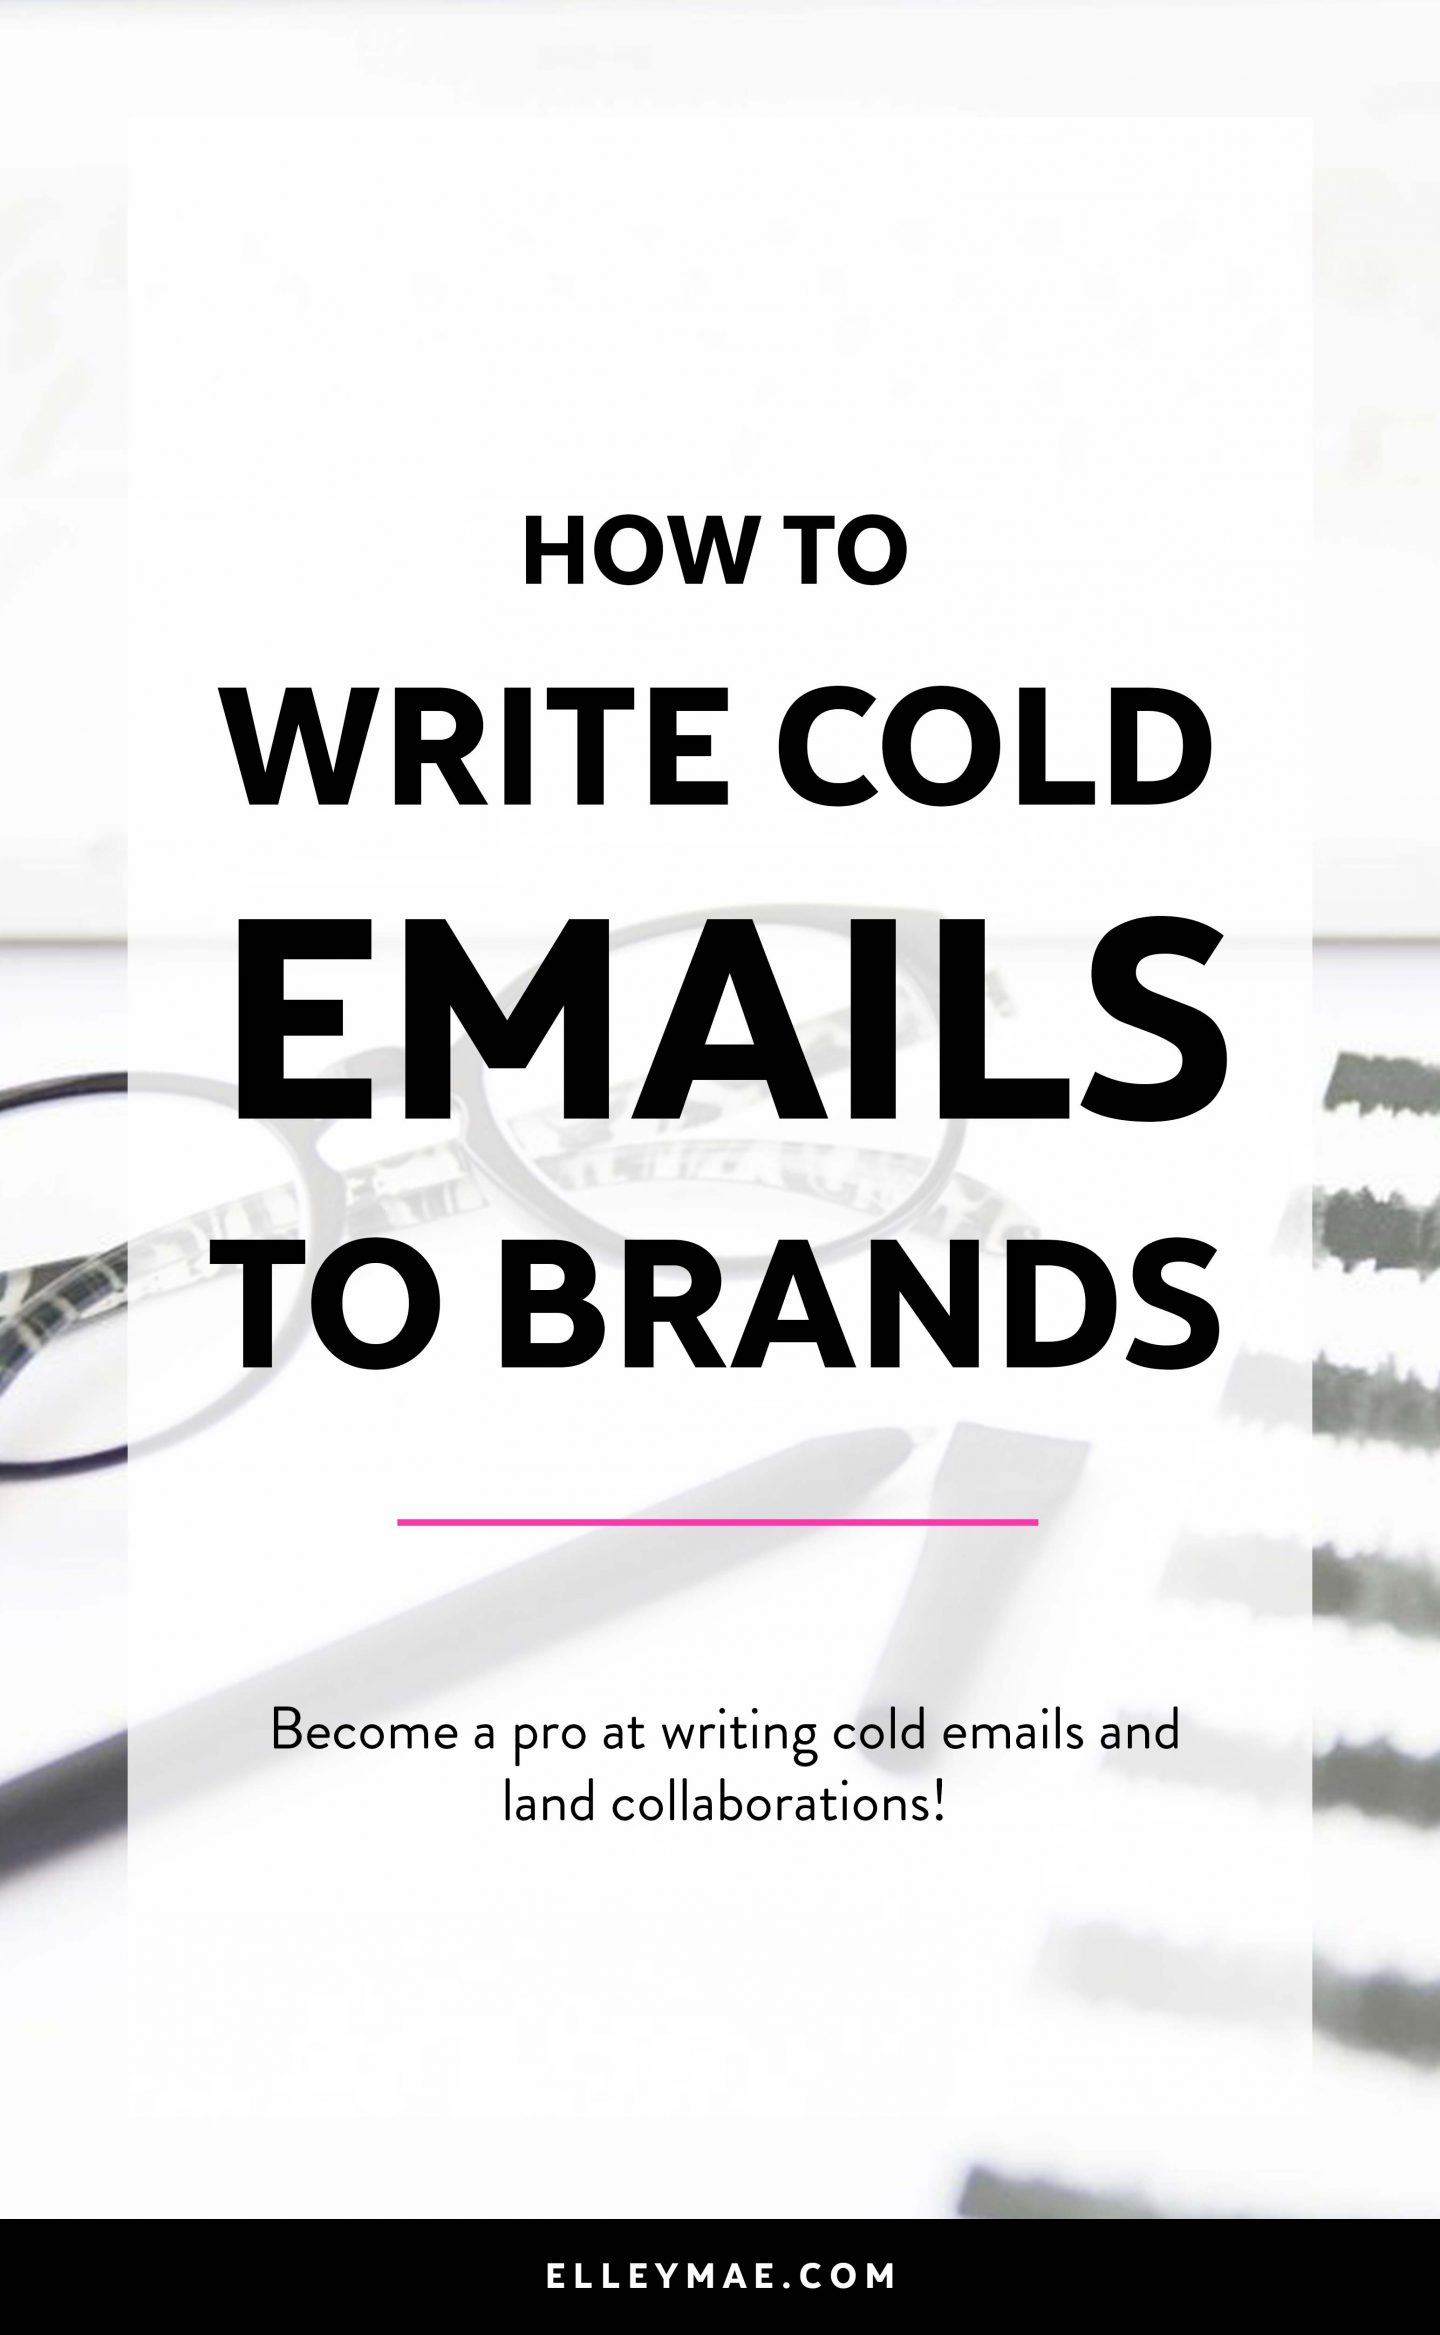 How To Reach Out To Brands With Cold Emails | Get free products, get free makeup & get free stuff through blogging and social media. Become a successful Instagram influencer by reaching out to brands & PR the right way. Follow this step-by-step guide to emailing brands for free products & to score collaborations and set yourself up for success. Download your free blogging worksheet! ElleyMae.com